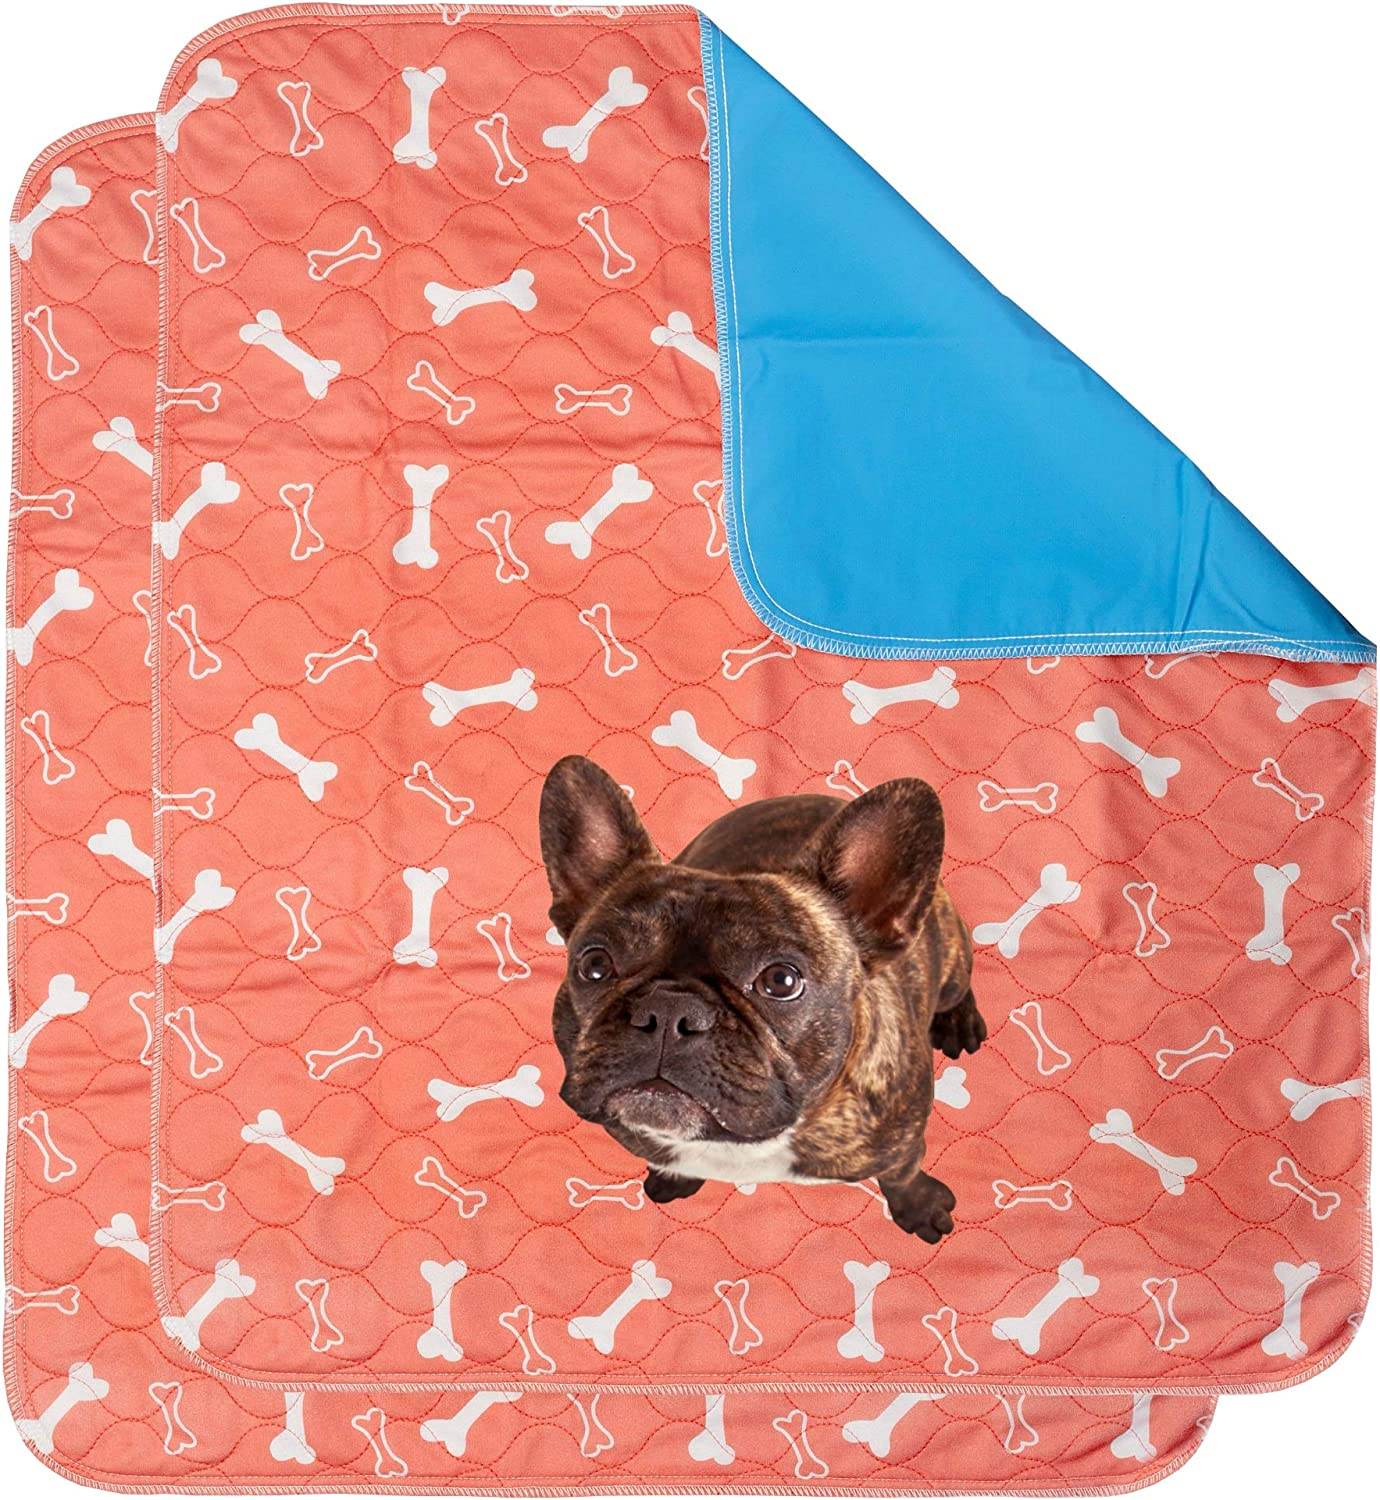 Free Puppy Training eBook 2 Pack Washable Pee Pads for Dogs Sm//Md//Lg Super Absorbent Whelping Pads w//Odor Control /& Waterproof Backing| Protect Indoor Floor /& Carpet Reusable Dog Wee Wee Pads